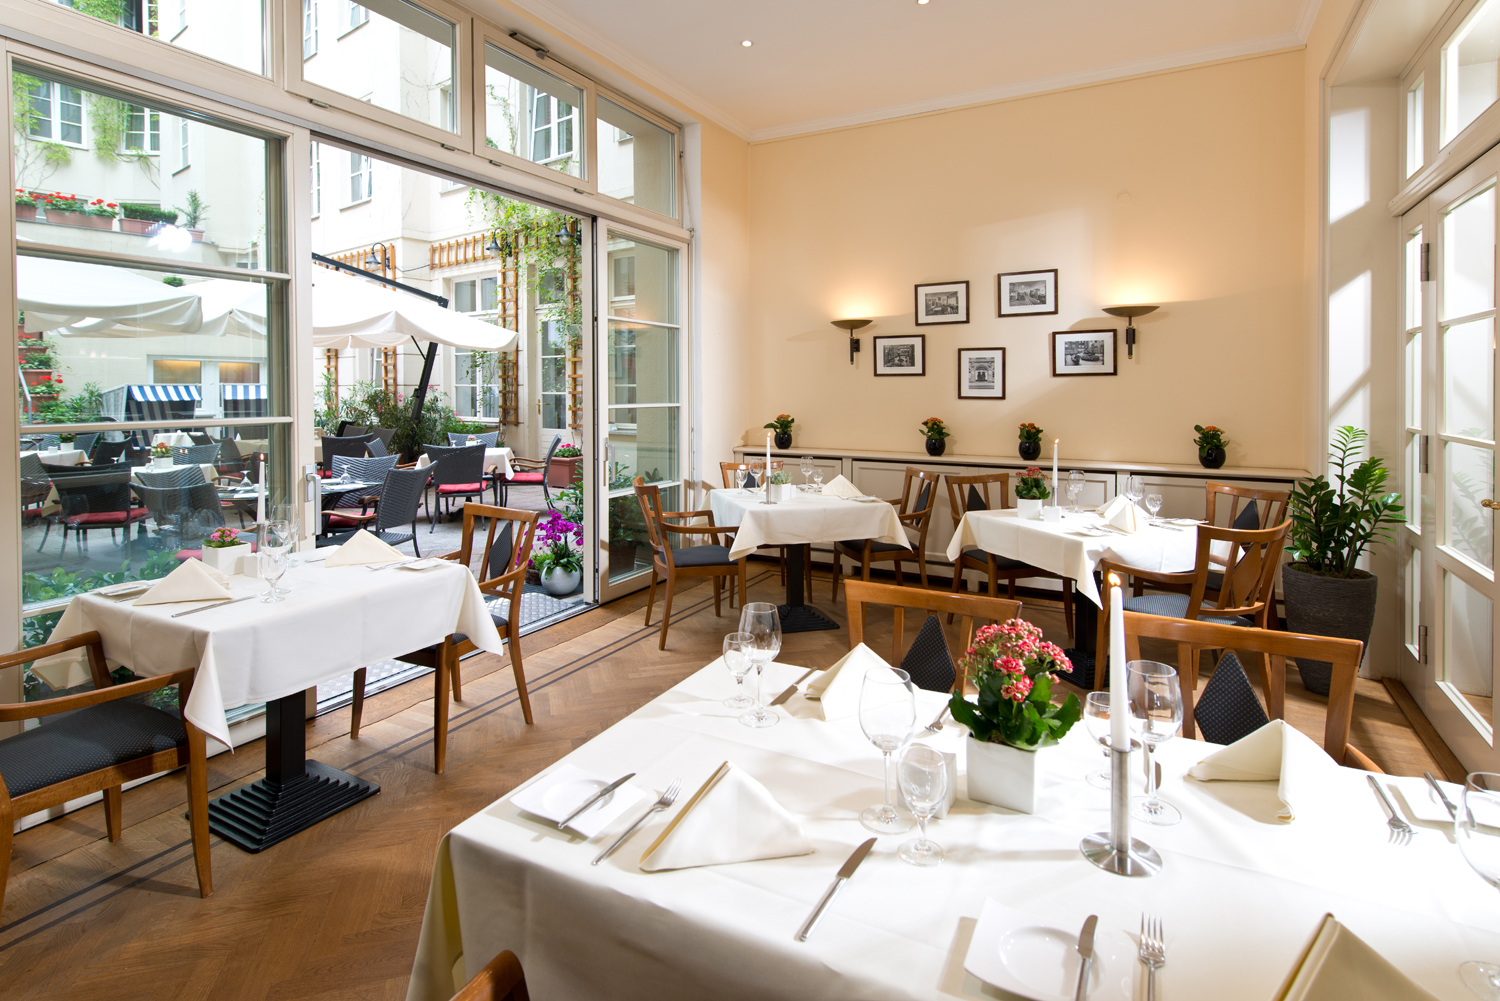 Gehobene Restaurants Berlin Mitte Alvis Restaurant Berlin Bookatable De